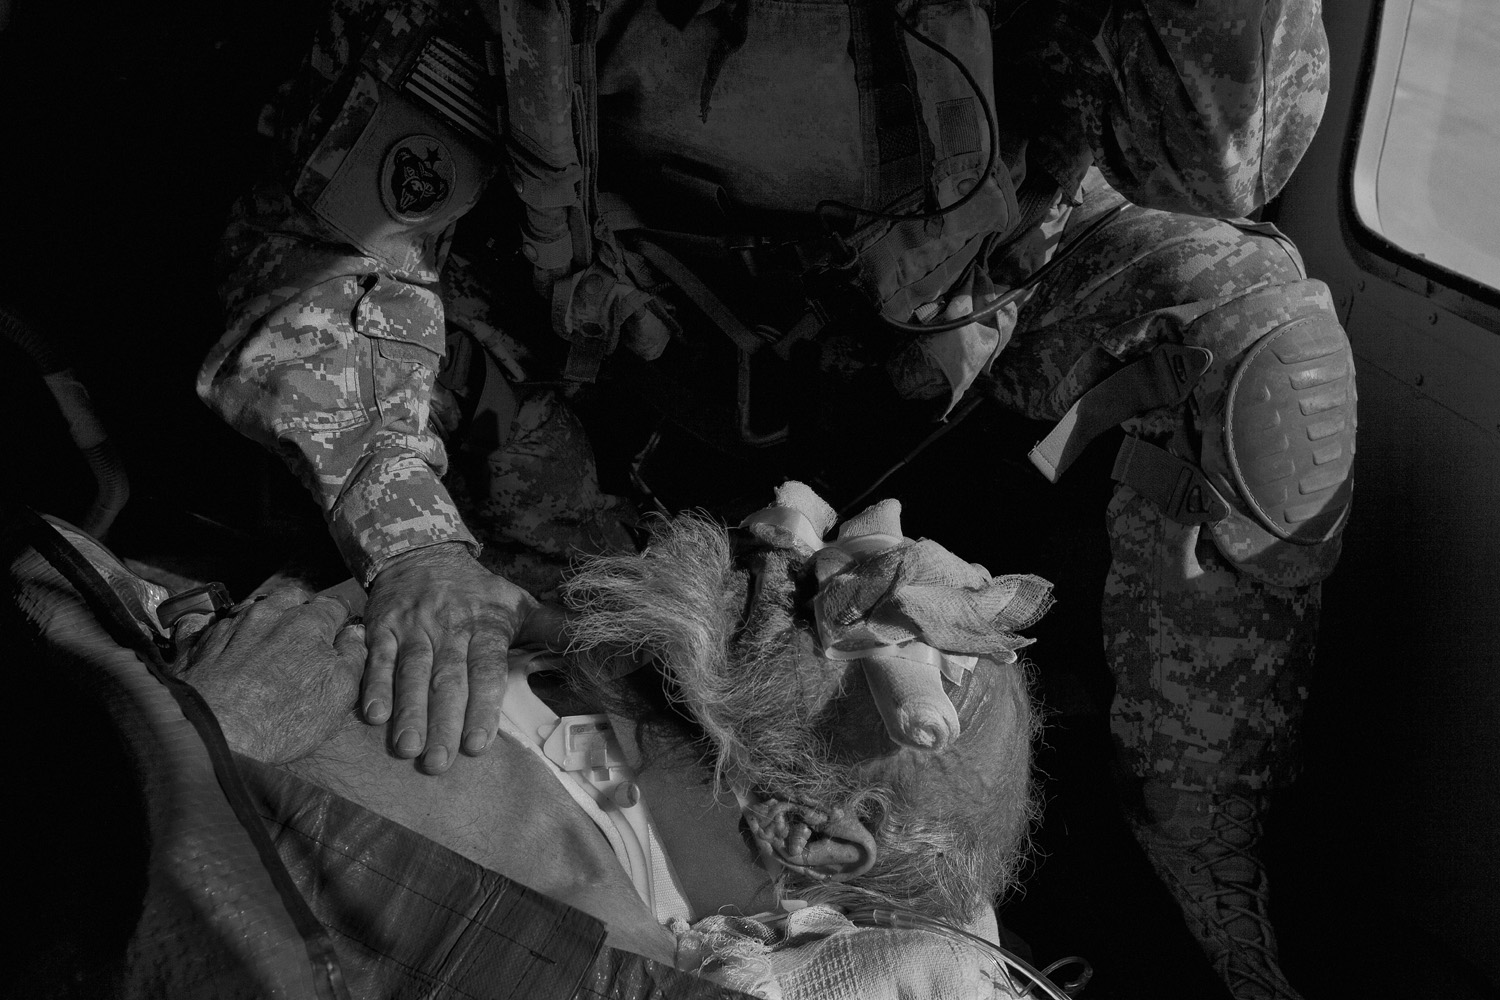 The crew members treat an Afghan man who was injured when his truck rolled over into an irrigation ditch. In addition to responding to wounded American and coalition troops, the medevac units provide care for ordinary Afghans with grave medical conditions.